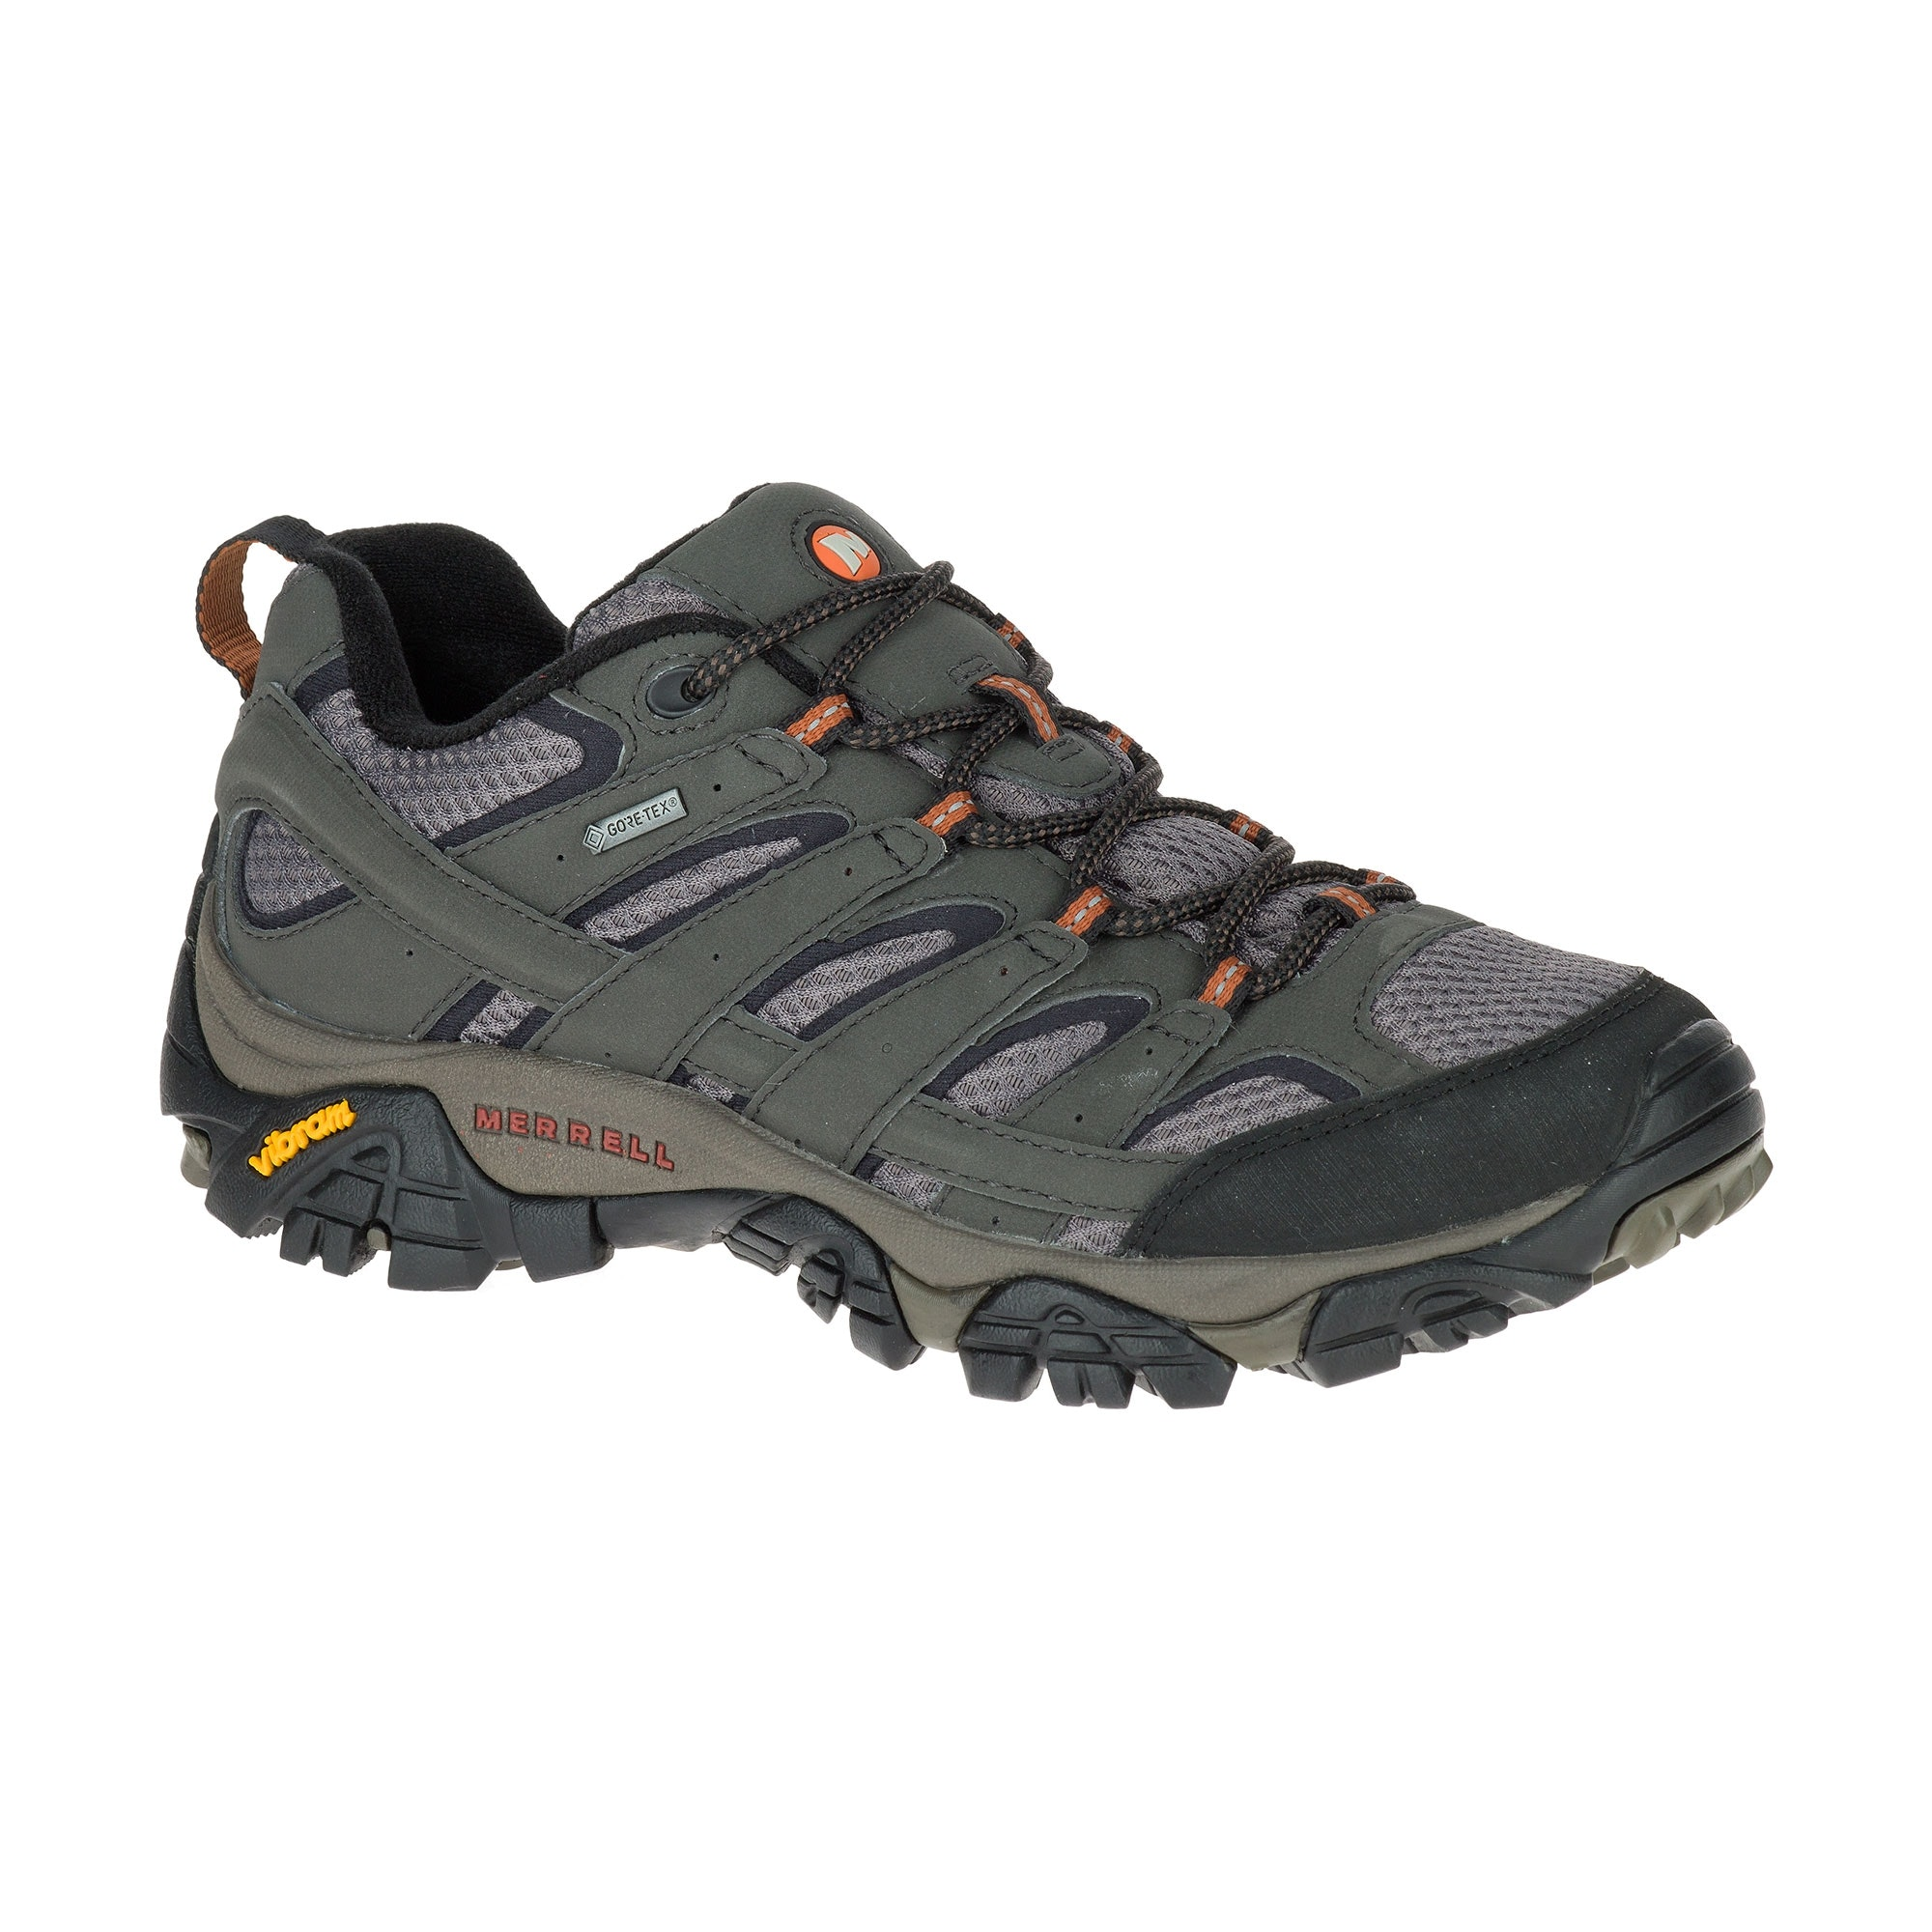 Merrell Moab 2 Women's Gore-Tex Hiking Shoes